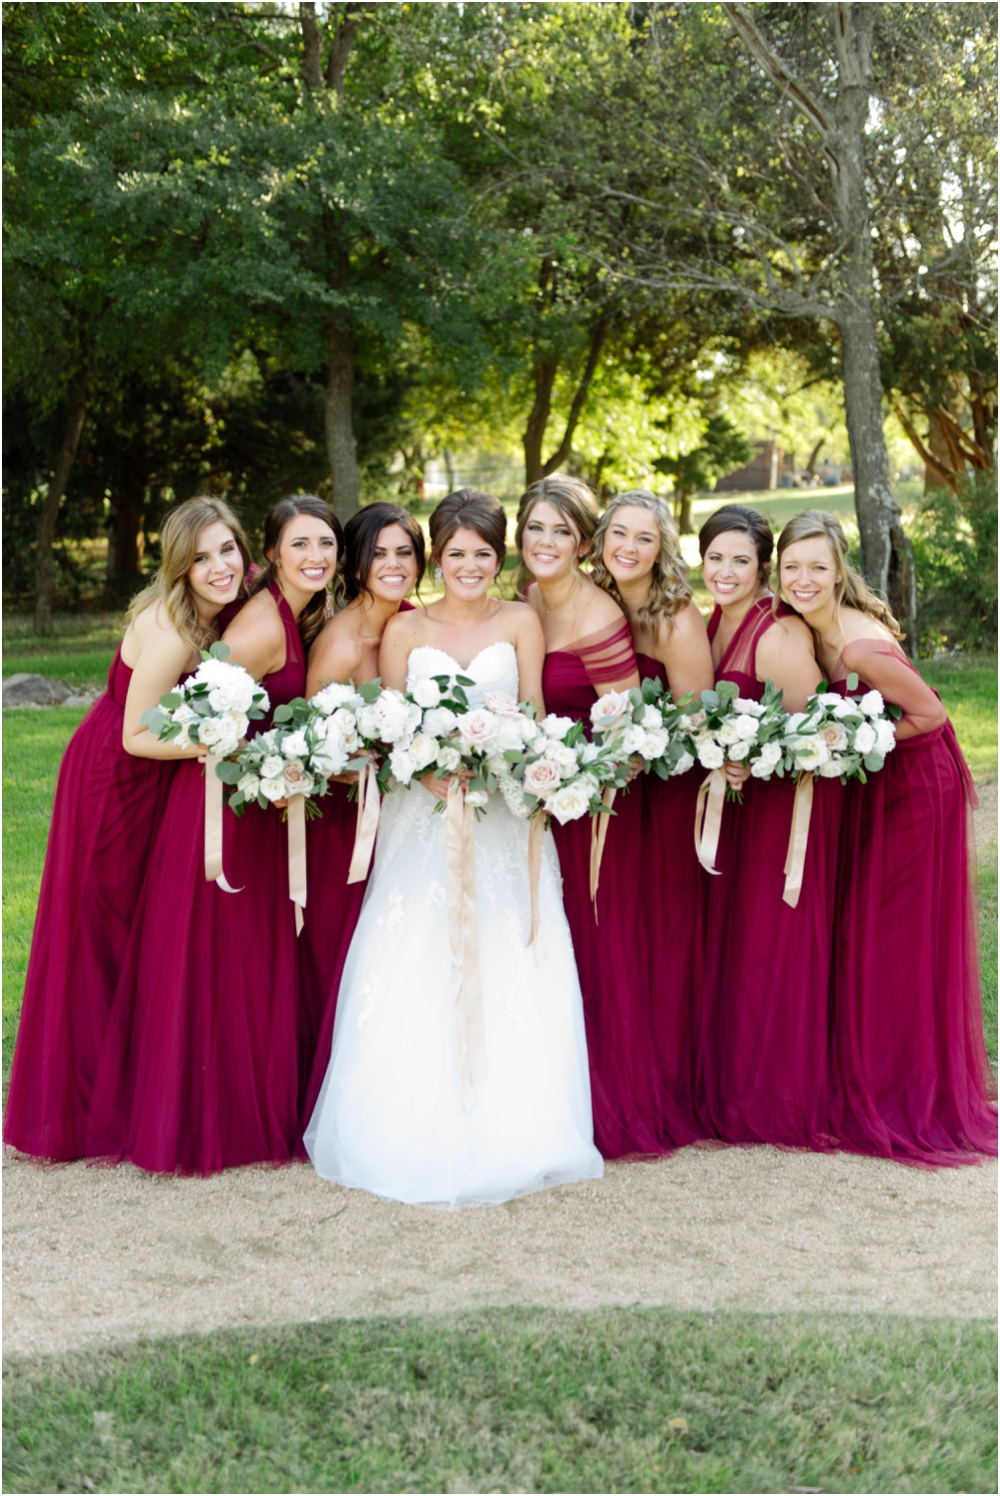 dallasweddingphotographer_texasweddingphotographer_texasweddingphotographers_dallasweddingphotographer_mattandjulieweddings_0605.jpg